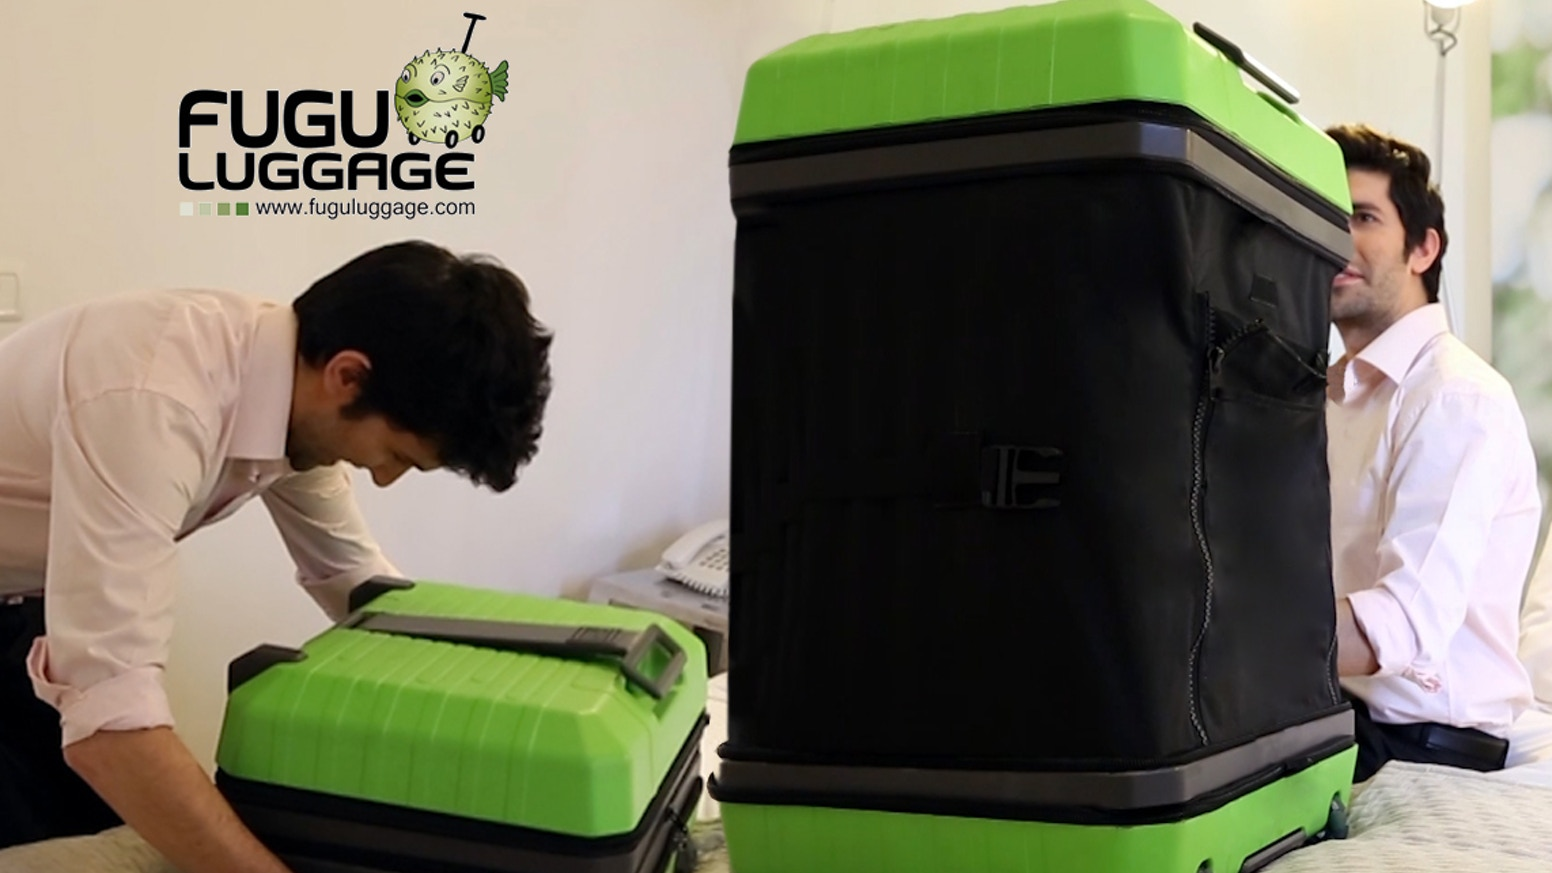 Introducing the revolutionary suitcase that can transform from a carry-on to a full-size check-in, act as a closet, a table and more!